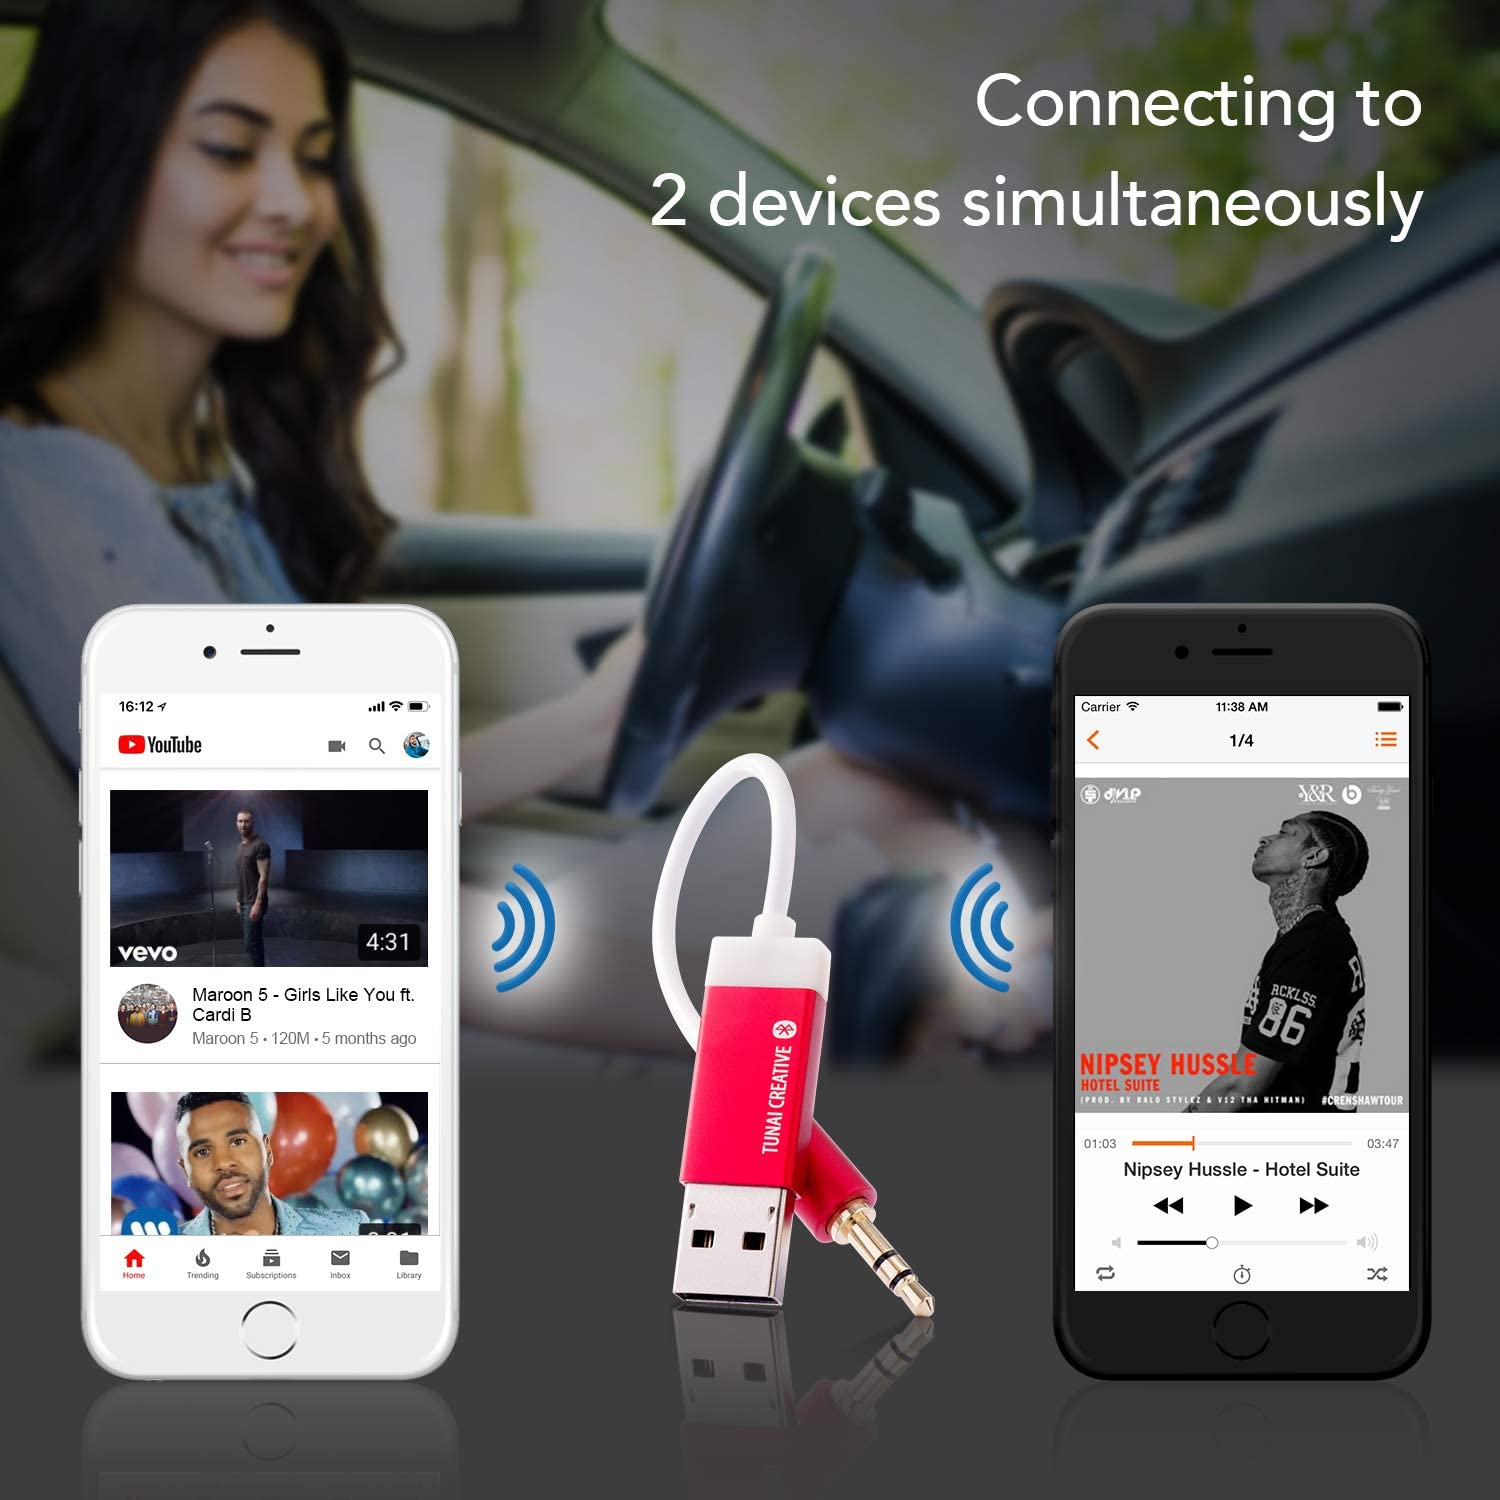 Premium Pack No Charging Needed TUNAI Firefly Bluetooth Receiver: World/'s Smallest USB Wireless Audio Bluetooth 4.2 Adapter with 3.5mm AUX for Car//Home Stereo Music Streaming; Auto On Red